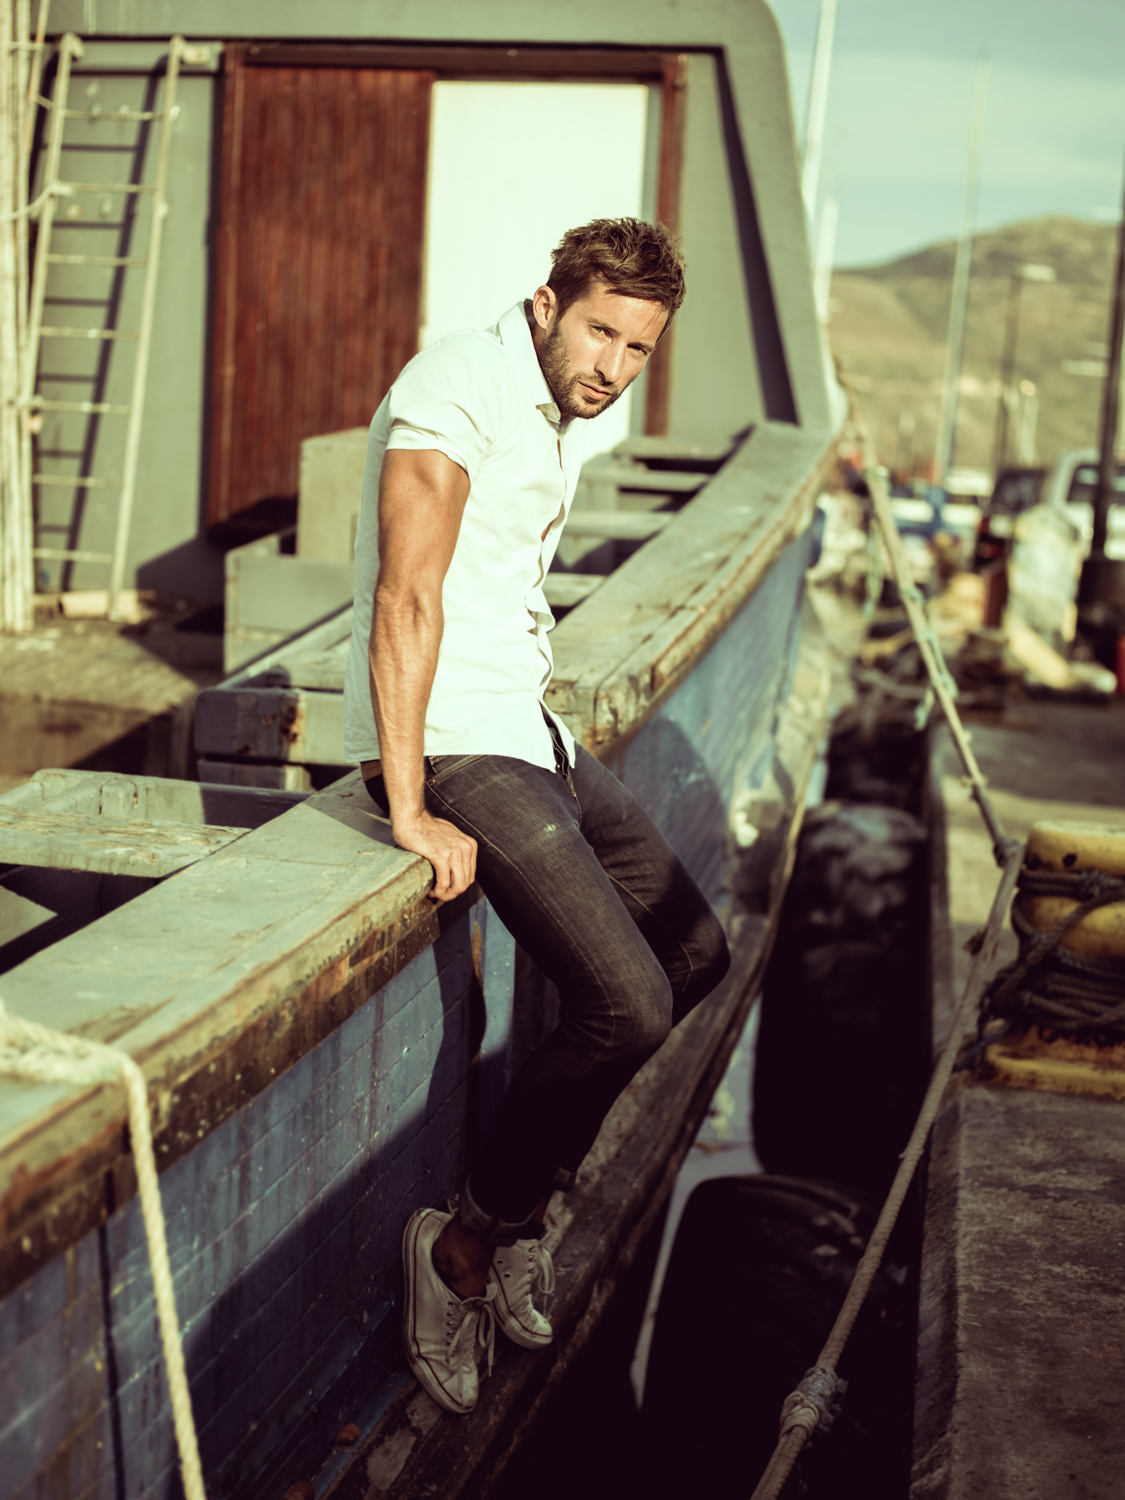 tim gerges the harbour - toby Cape Town Fashion photographer-4573180.jpg